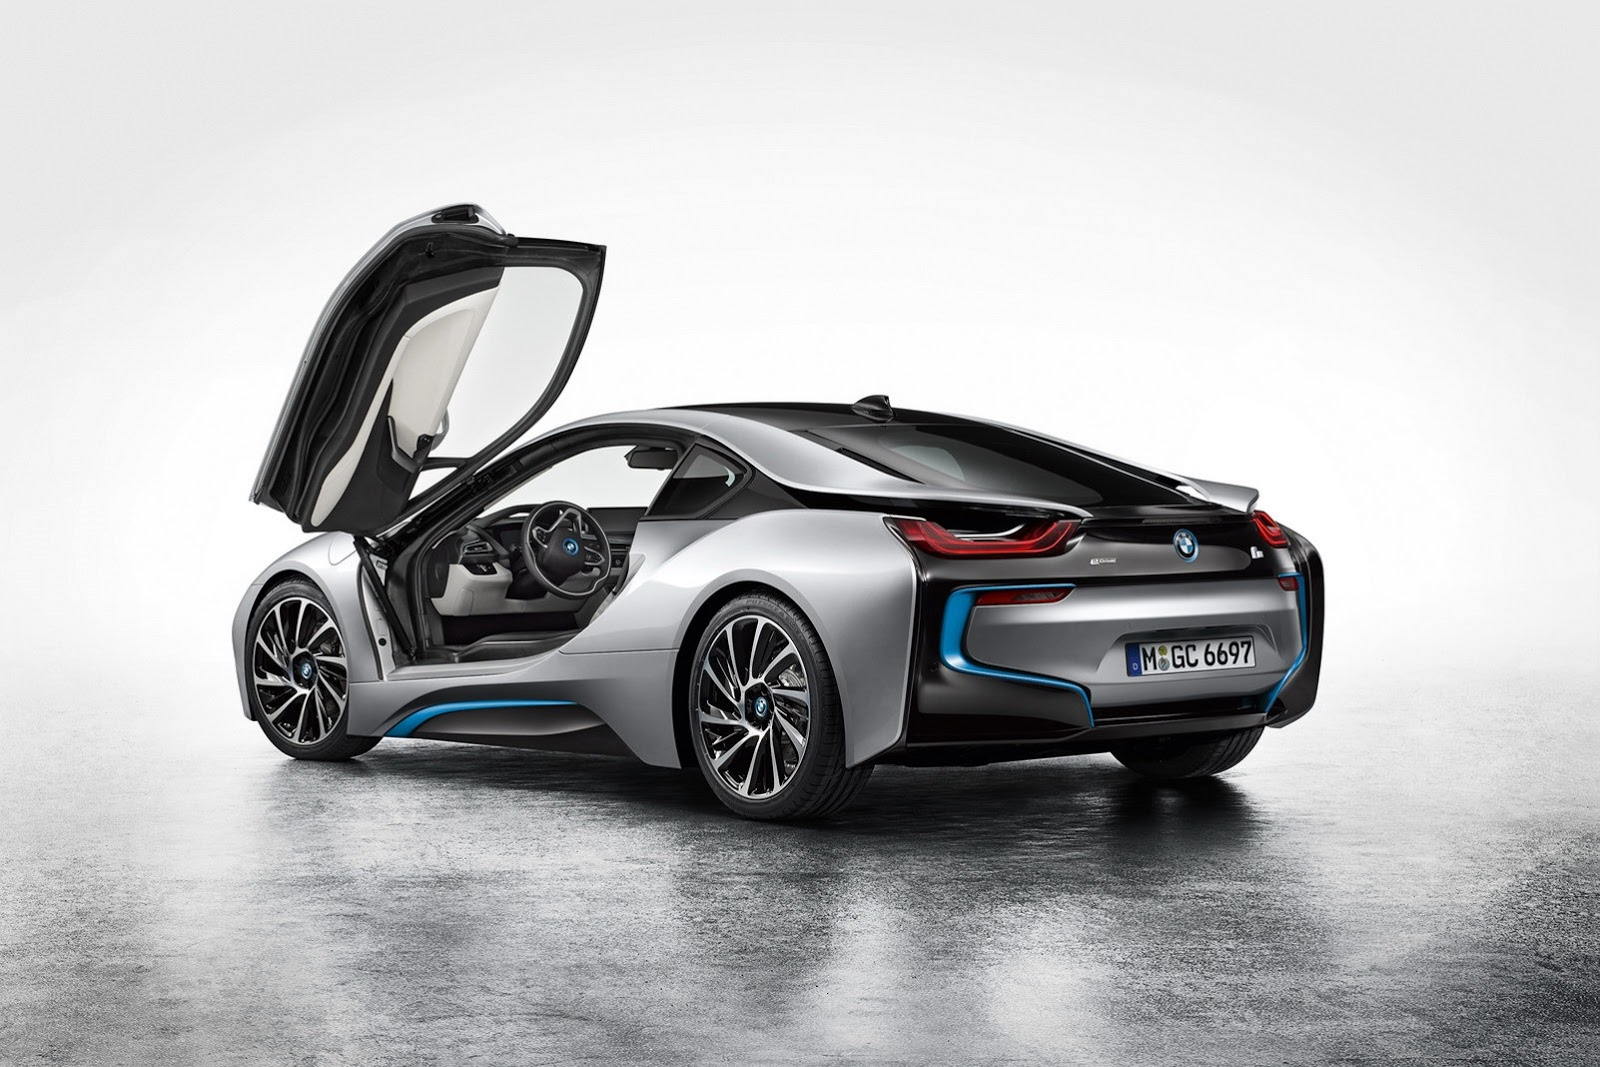 new bmw i8 hybrid sports car priced from 135 700 in u s autotribute. Black Bedroom Furniture Sets. Home Design Ideas